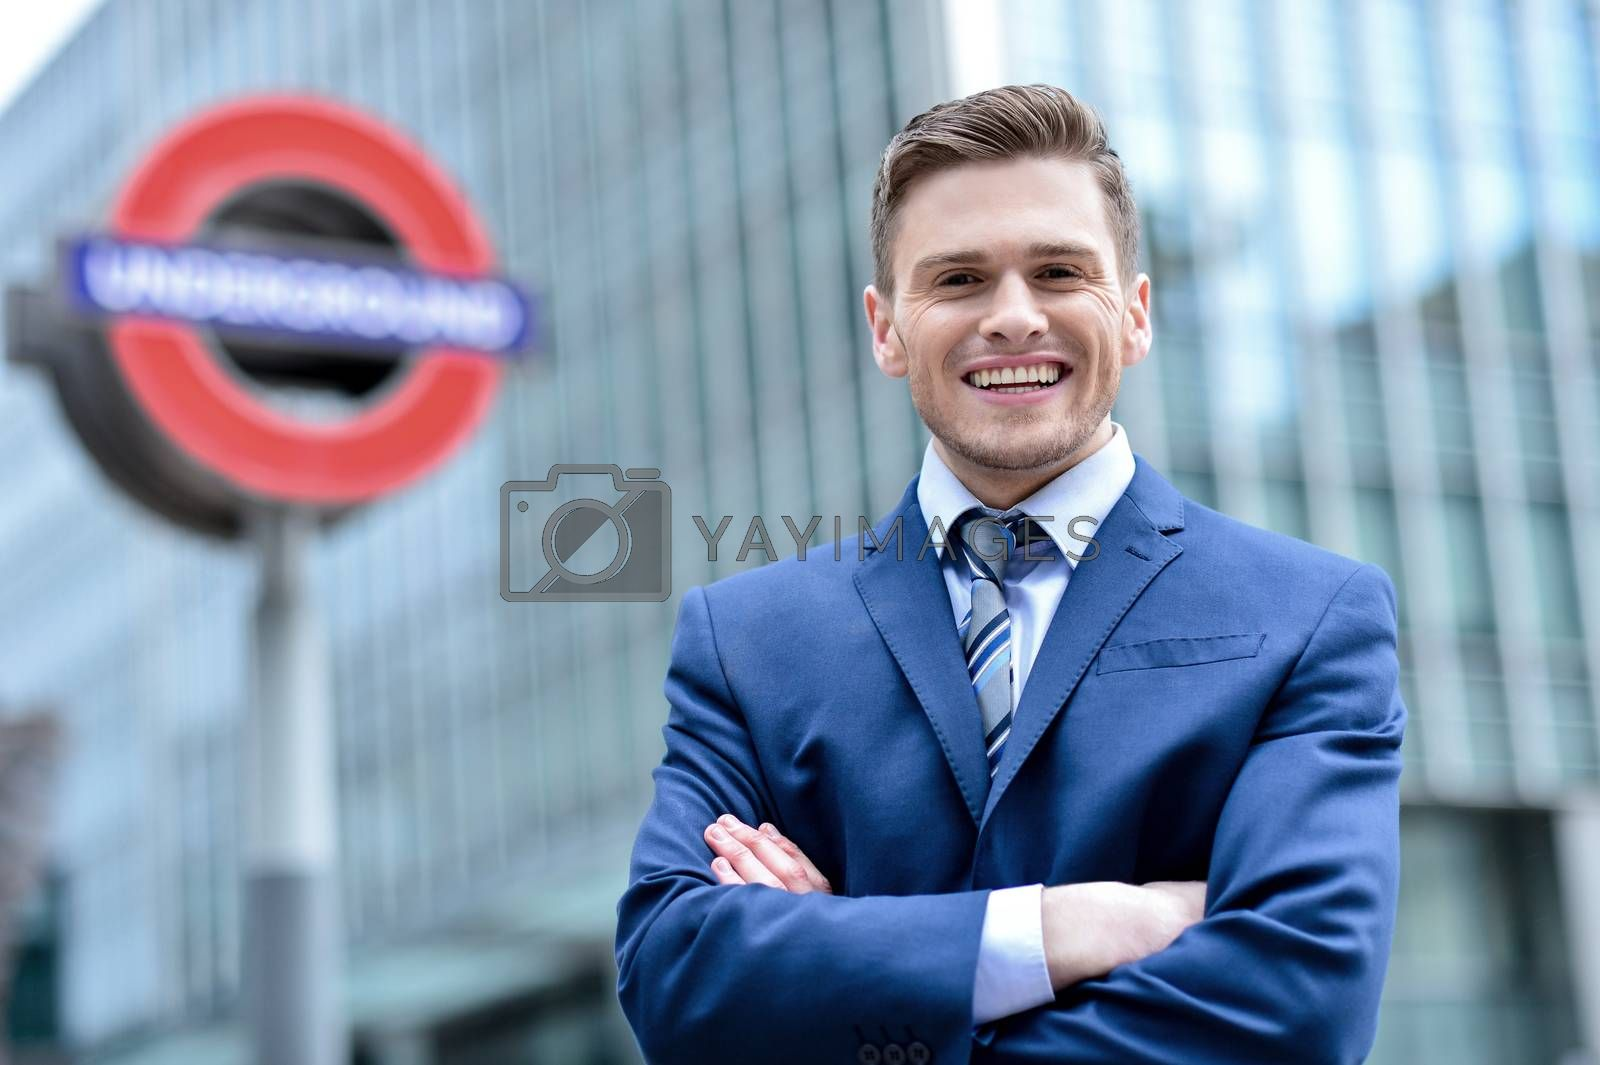 Relaxed corporate male executive by stockyimages